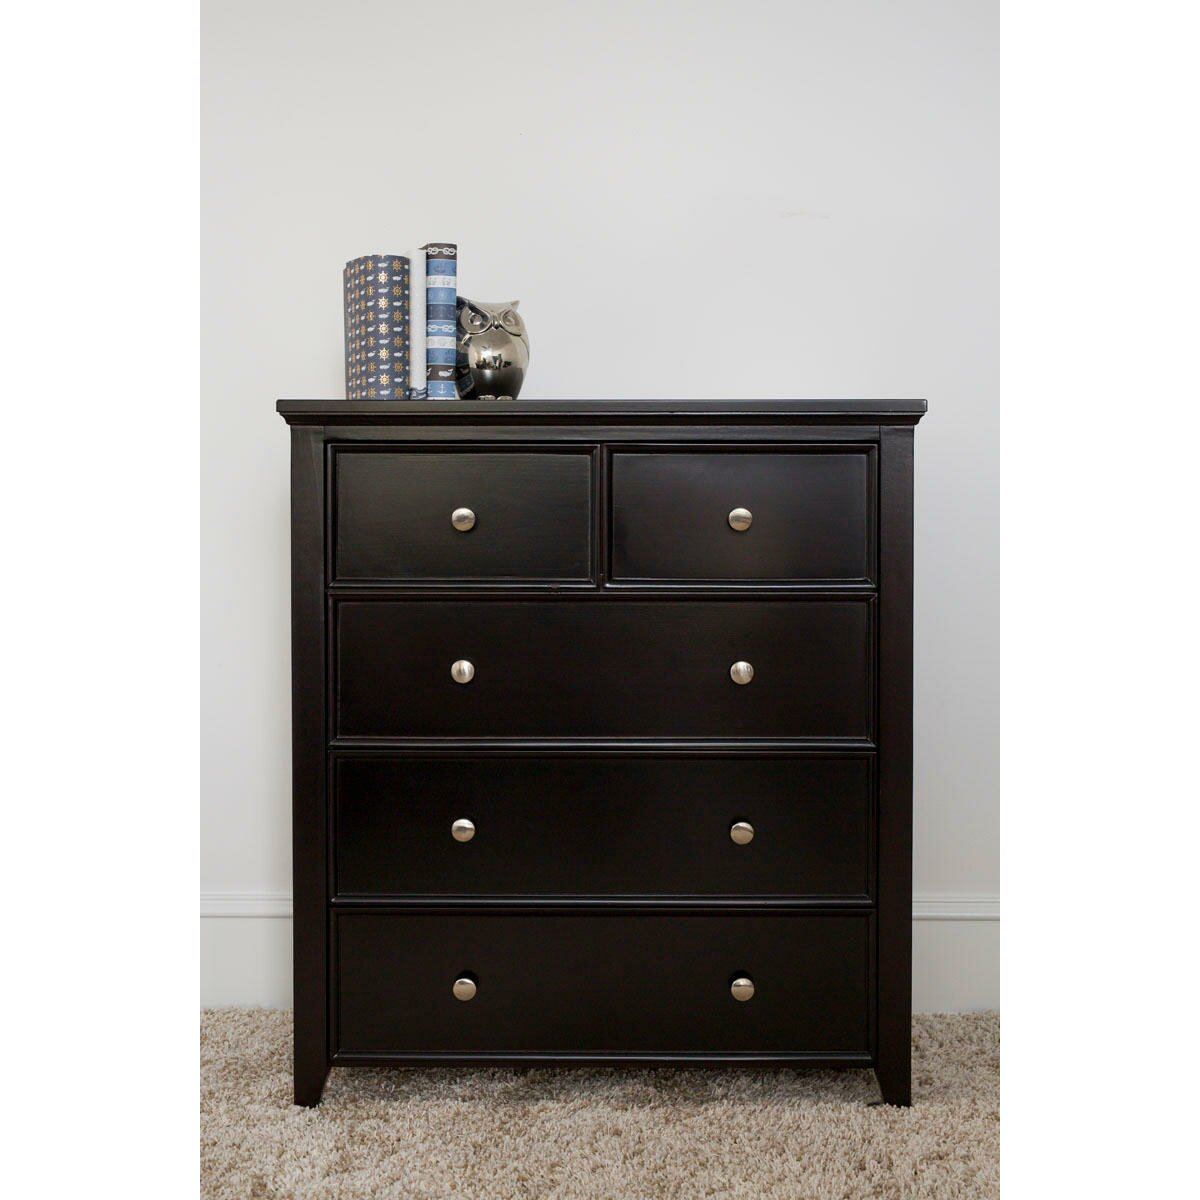 Craft kids furniture drawer dresser reviews wayfair